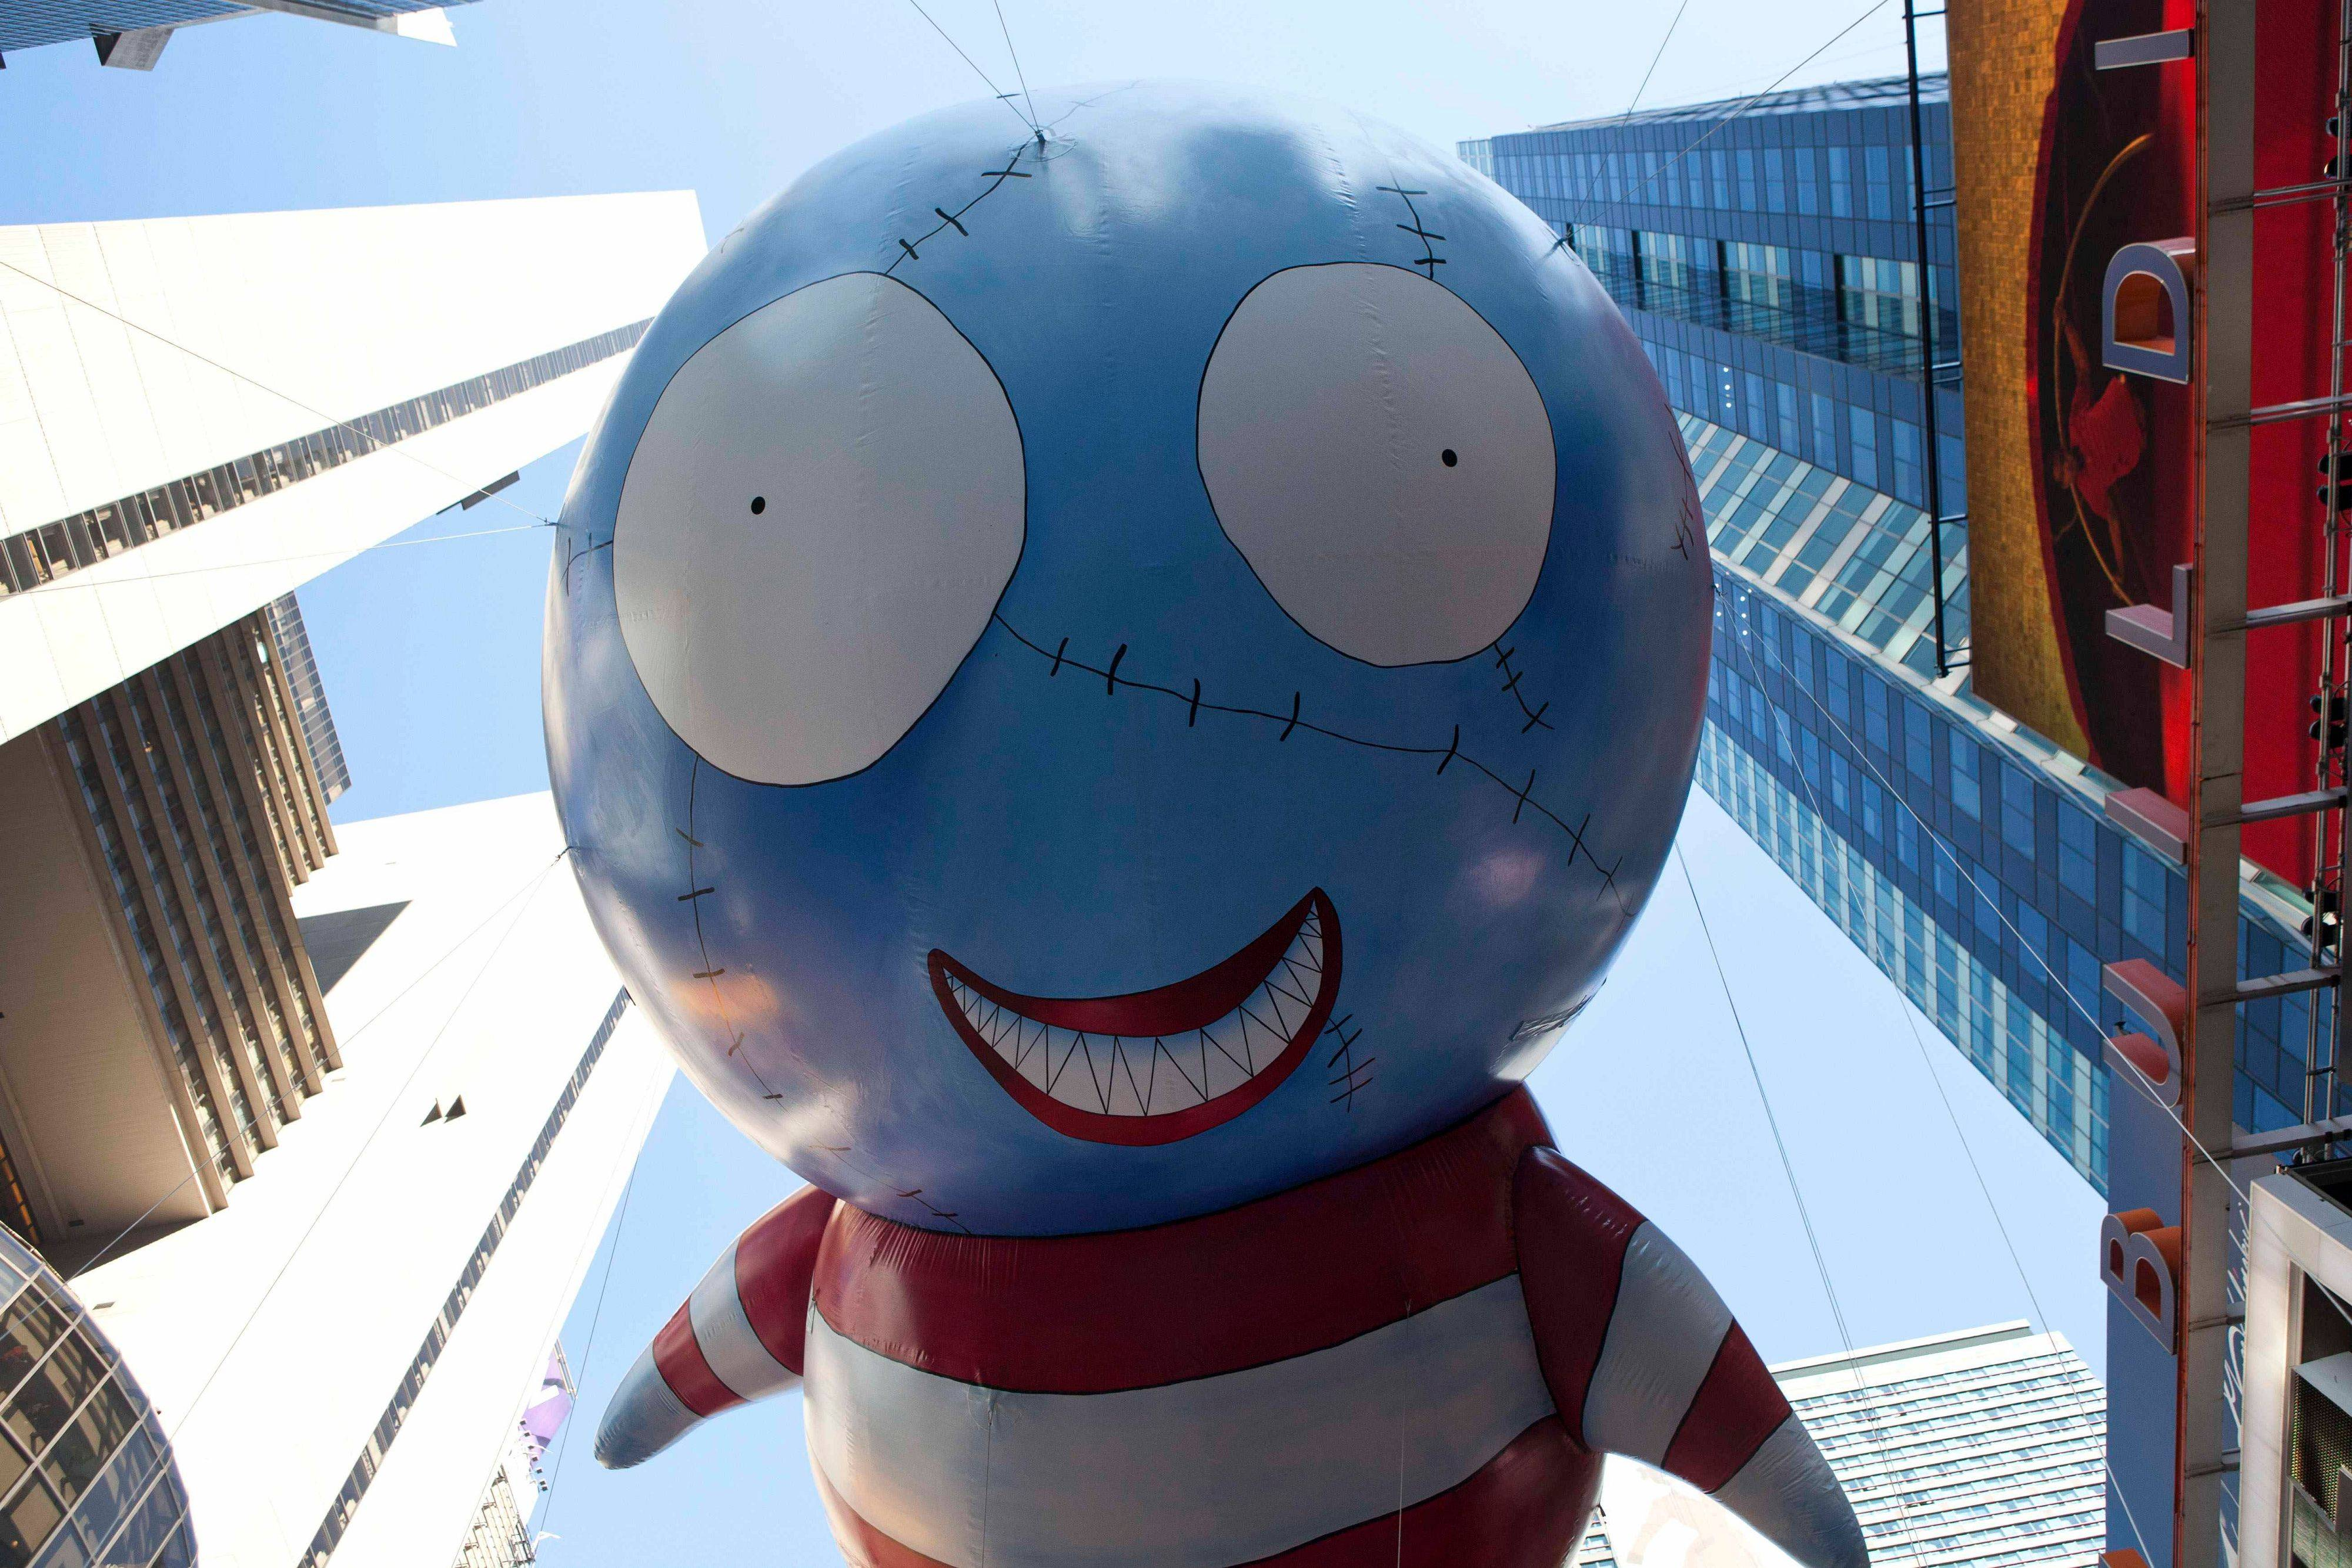 'B,' designed by Tim Burton, floats during the Macy's Thanksgiving Day Parade in Times Square in New York on Thursday, Nov. 24, 2011. The parade premiered in 1924, this is its 85th year.